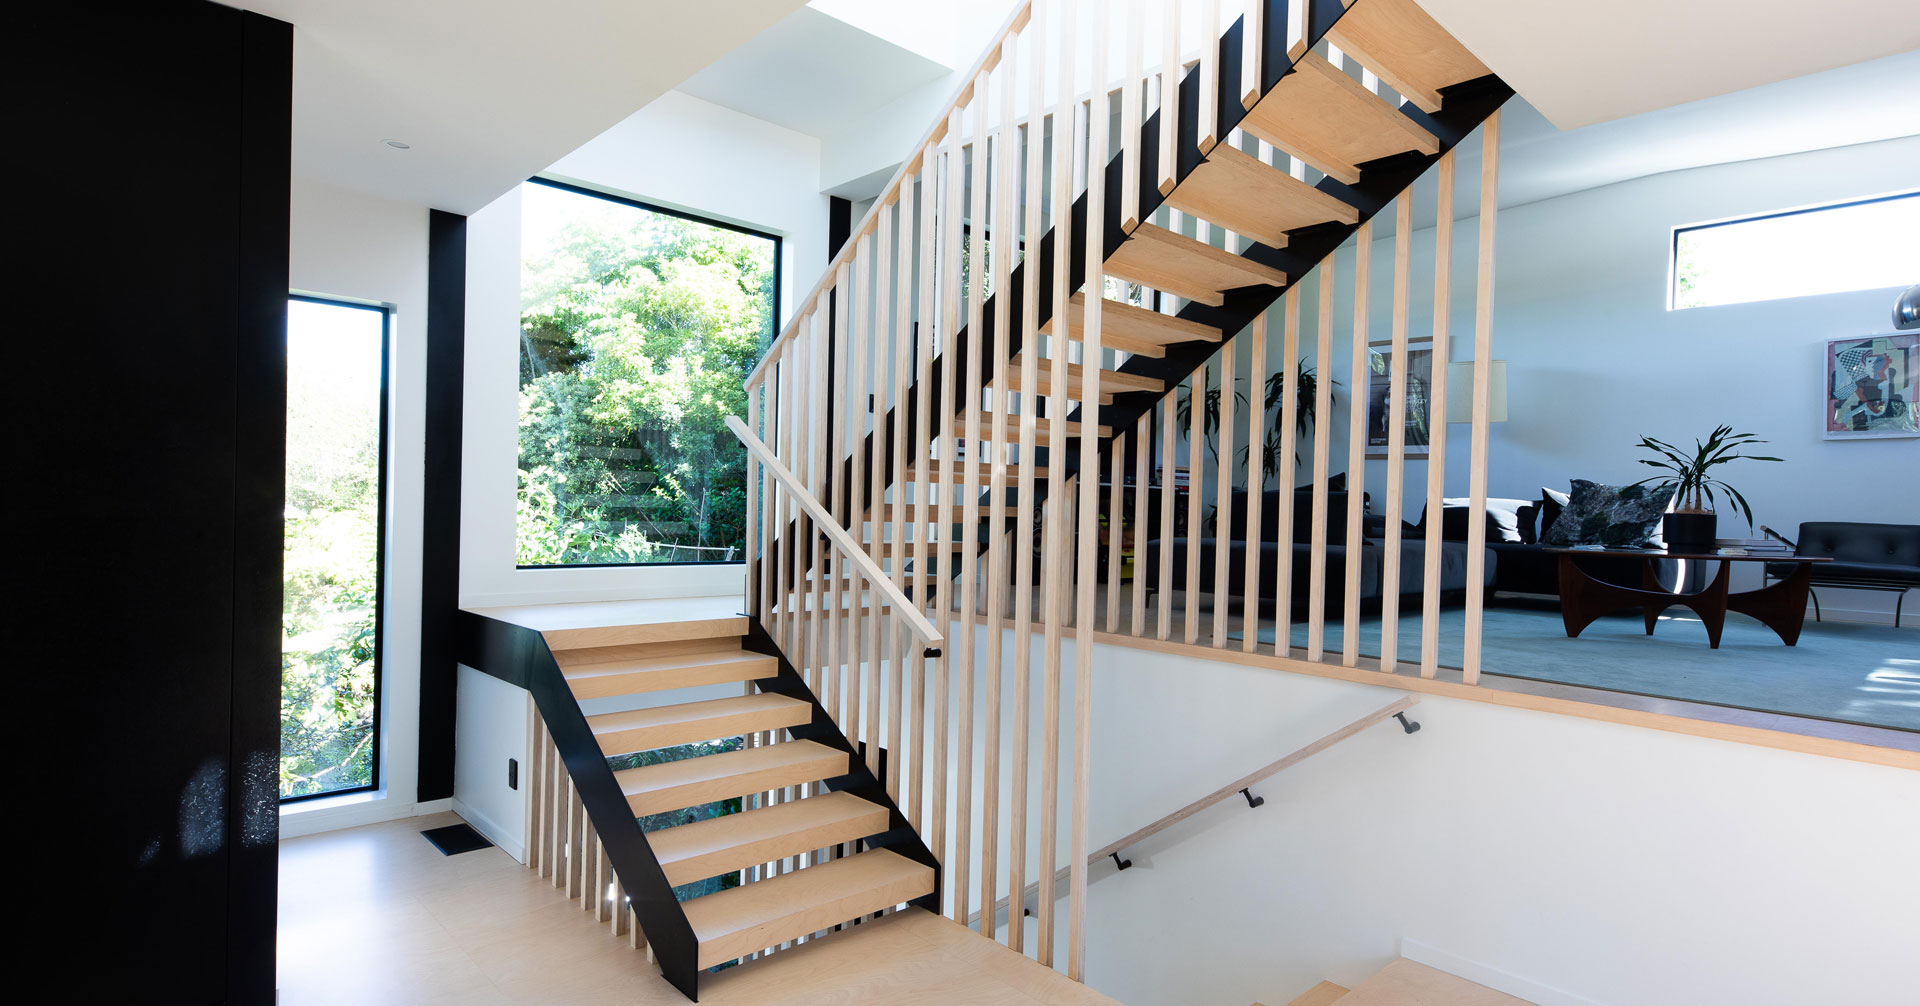 Staircase Designers & Manufacturers in New Zealand   Ackworth House